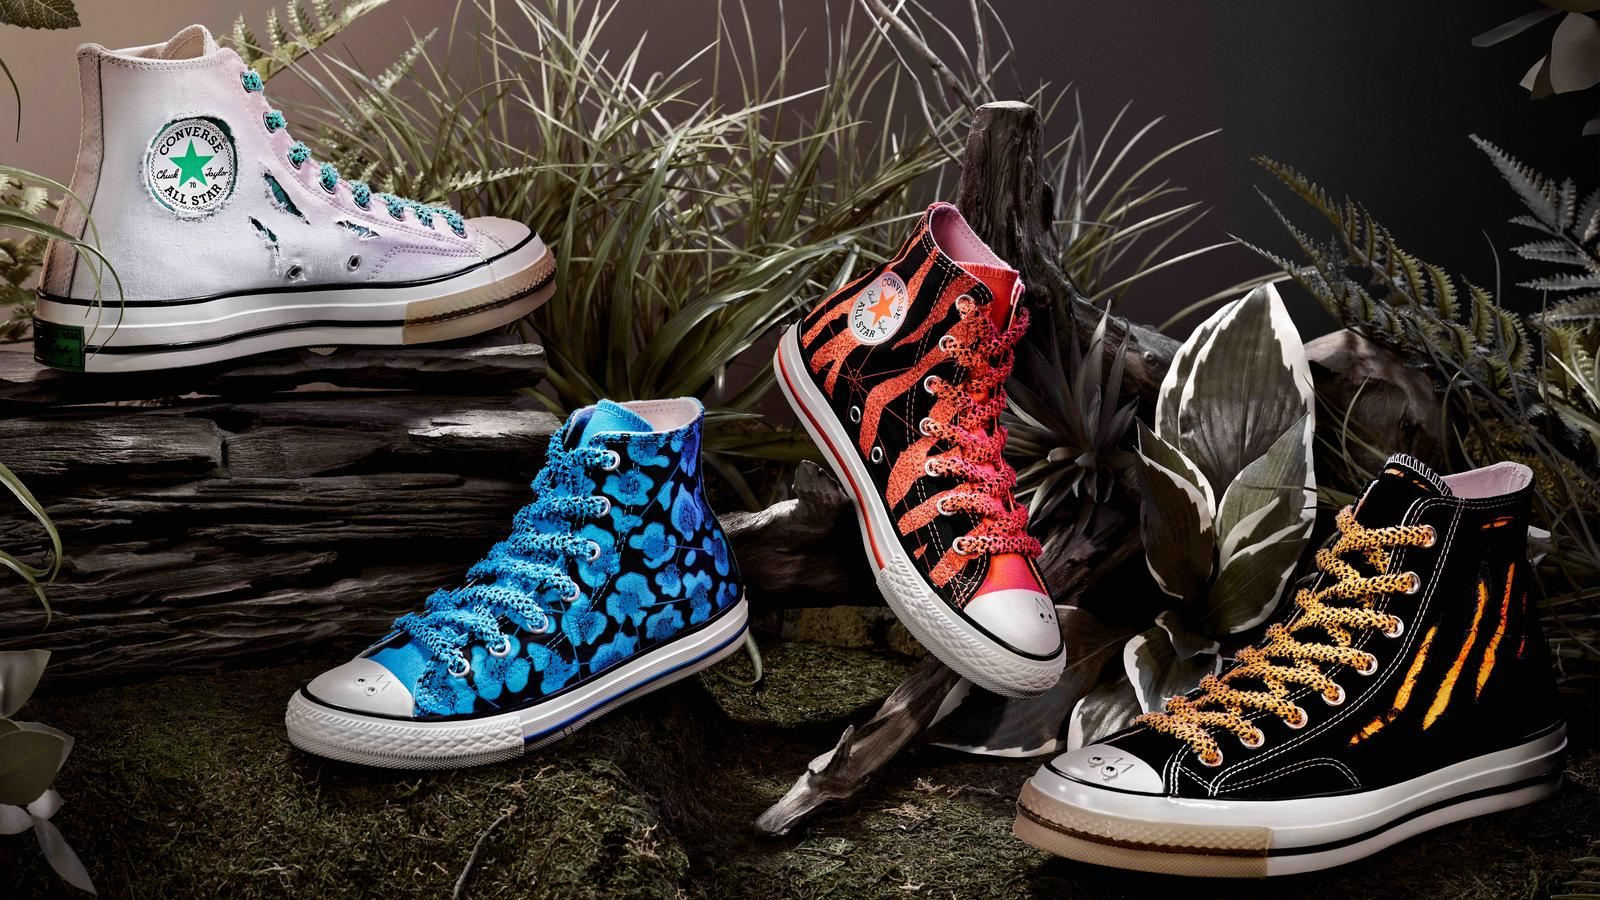 Dr. Woo's Second Converse Collaboration Delivers